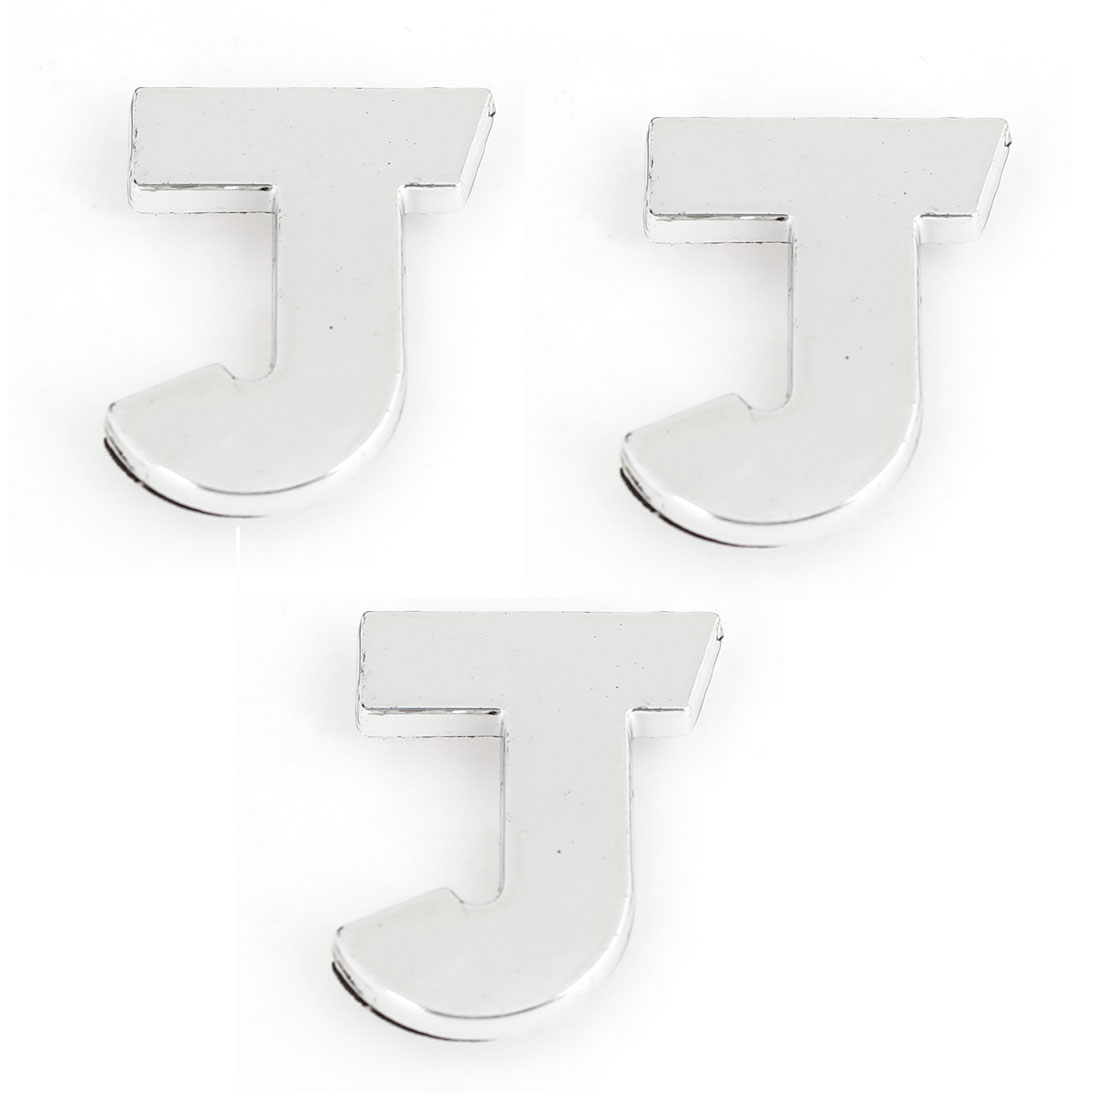 Automobile Car Plastic Letter J Design 3D Emblem Badge Stickers Silver Tone 3PCS